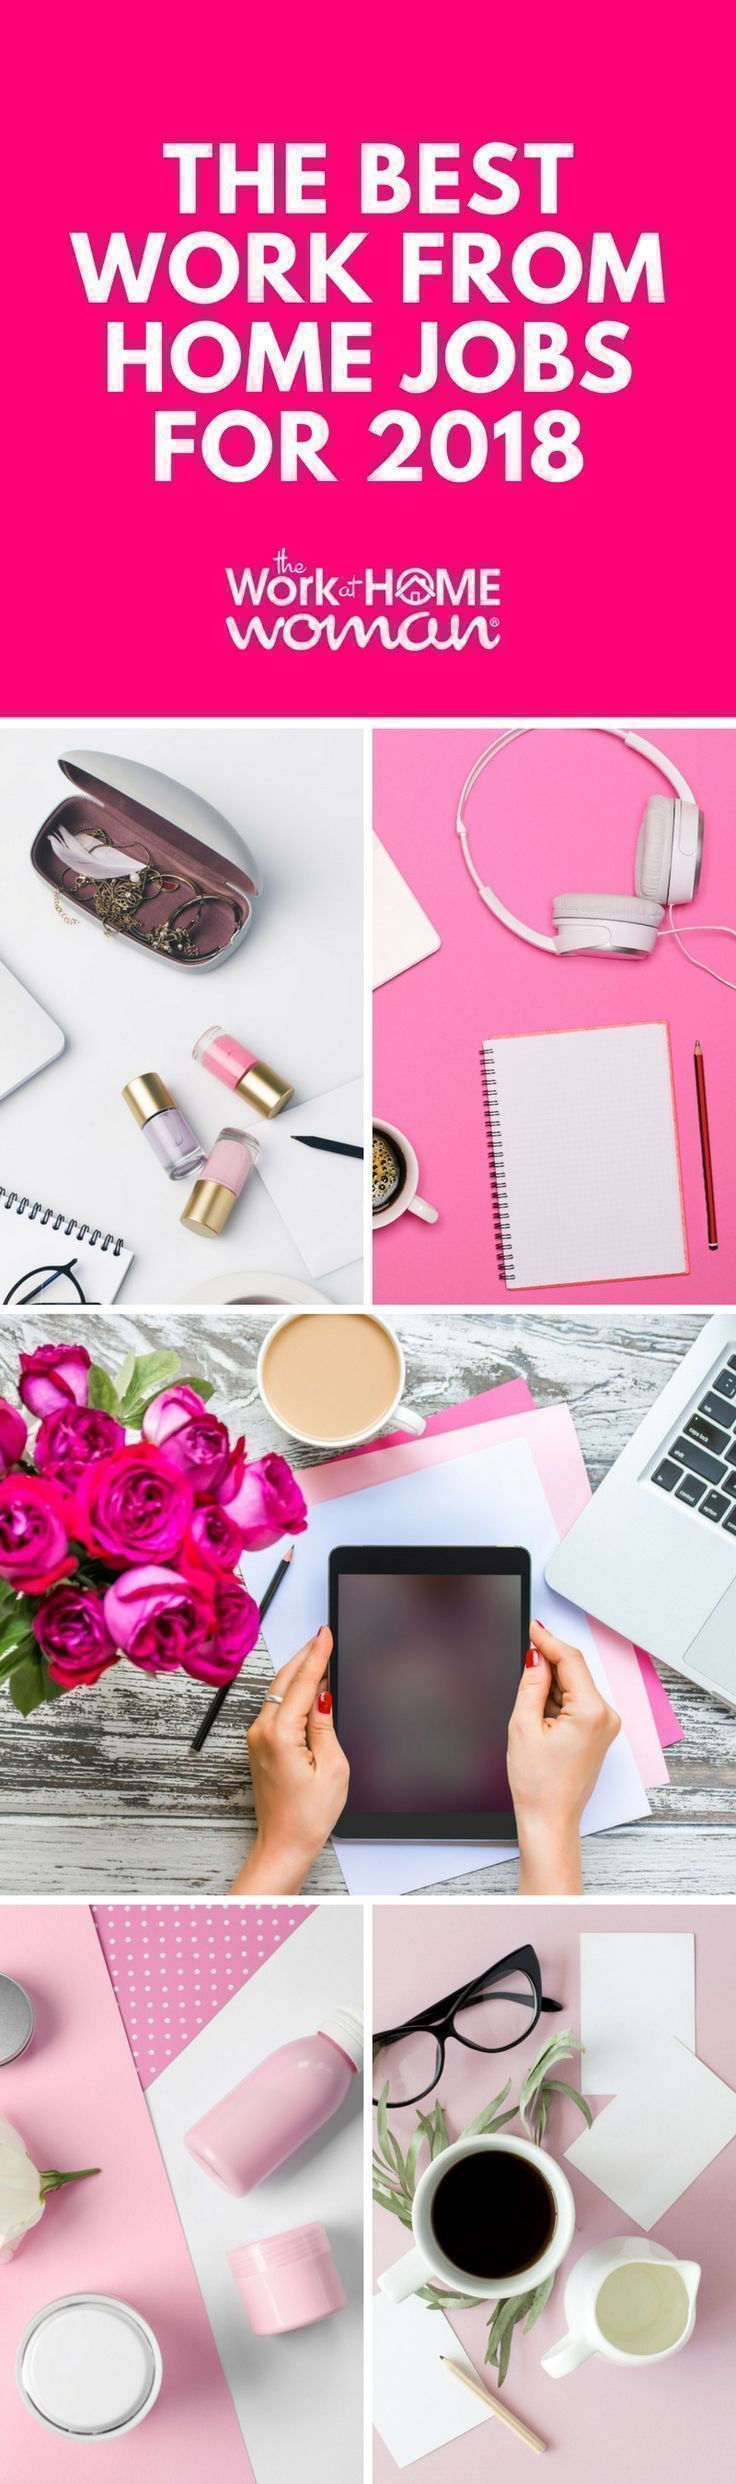 This list is amazing! There are TONs of work at home jobs